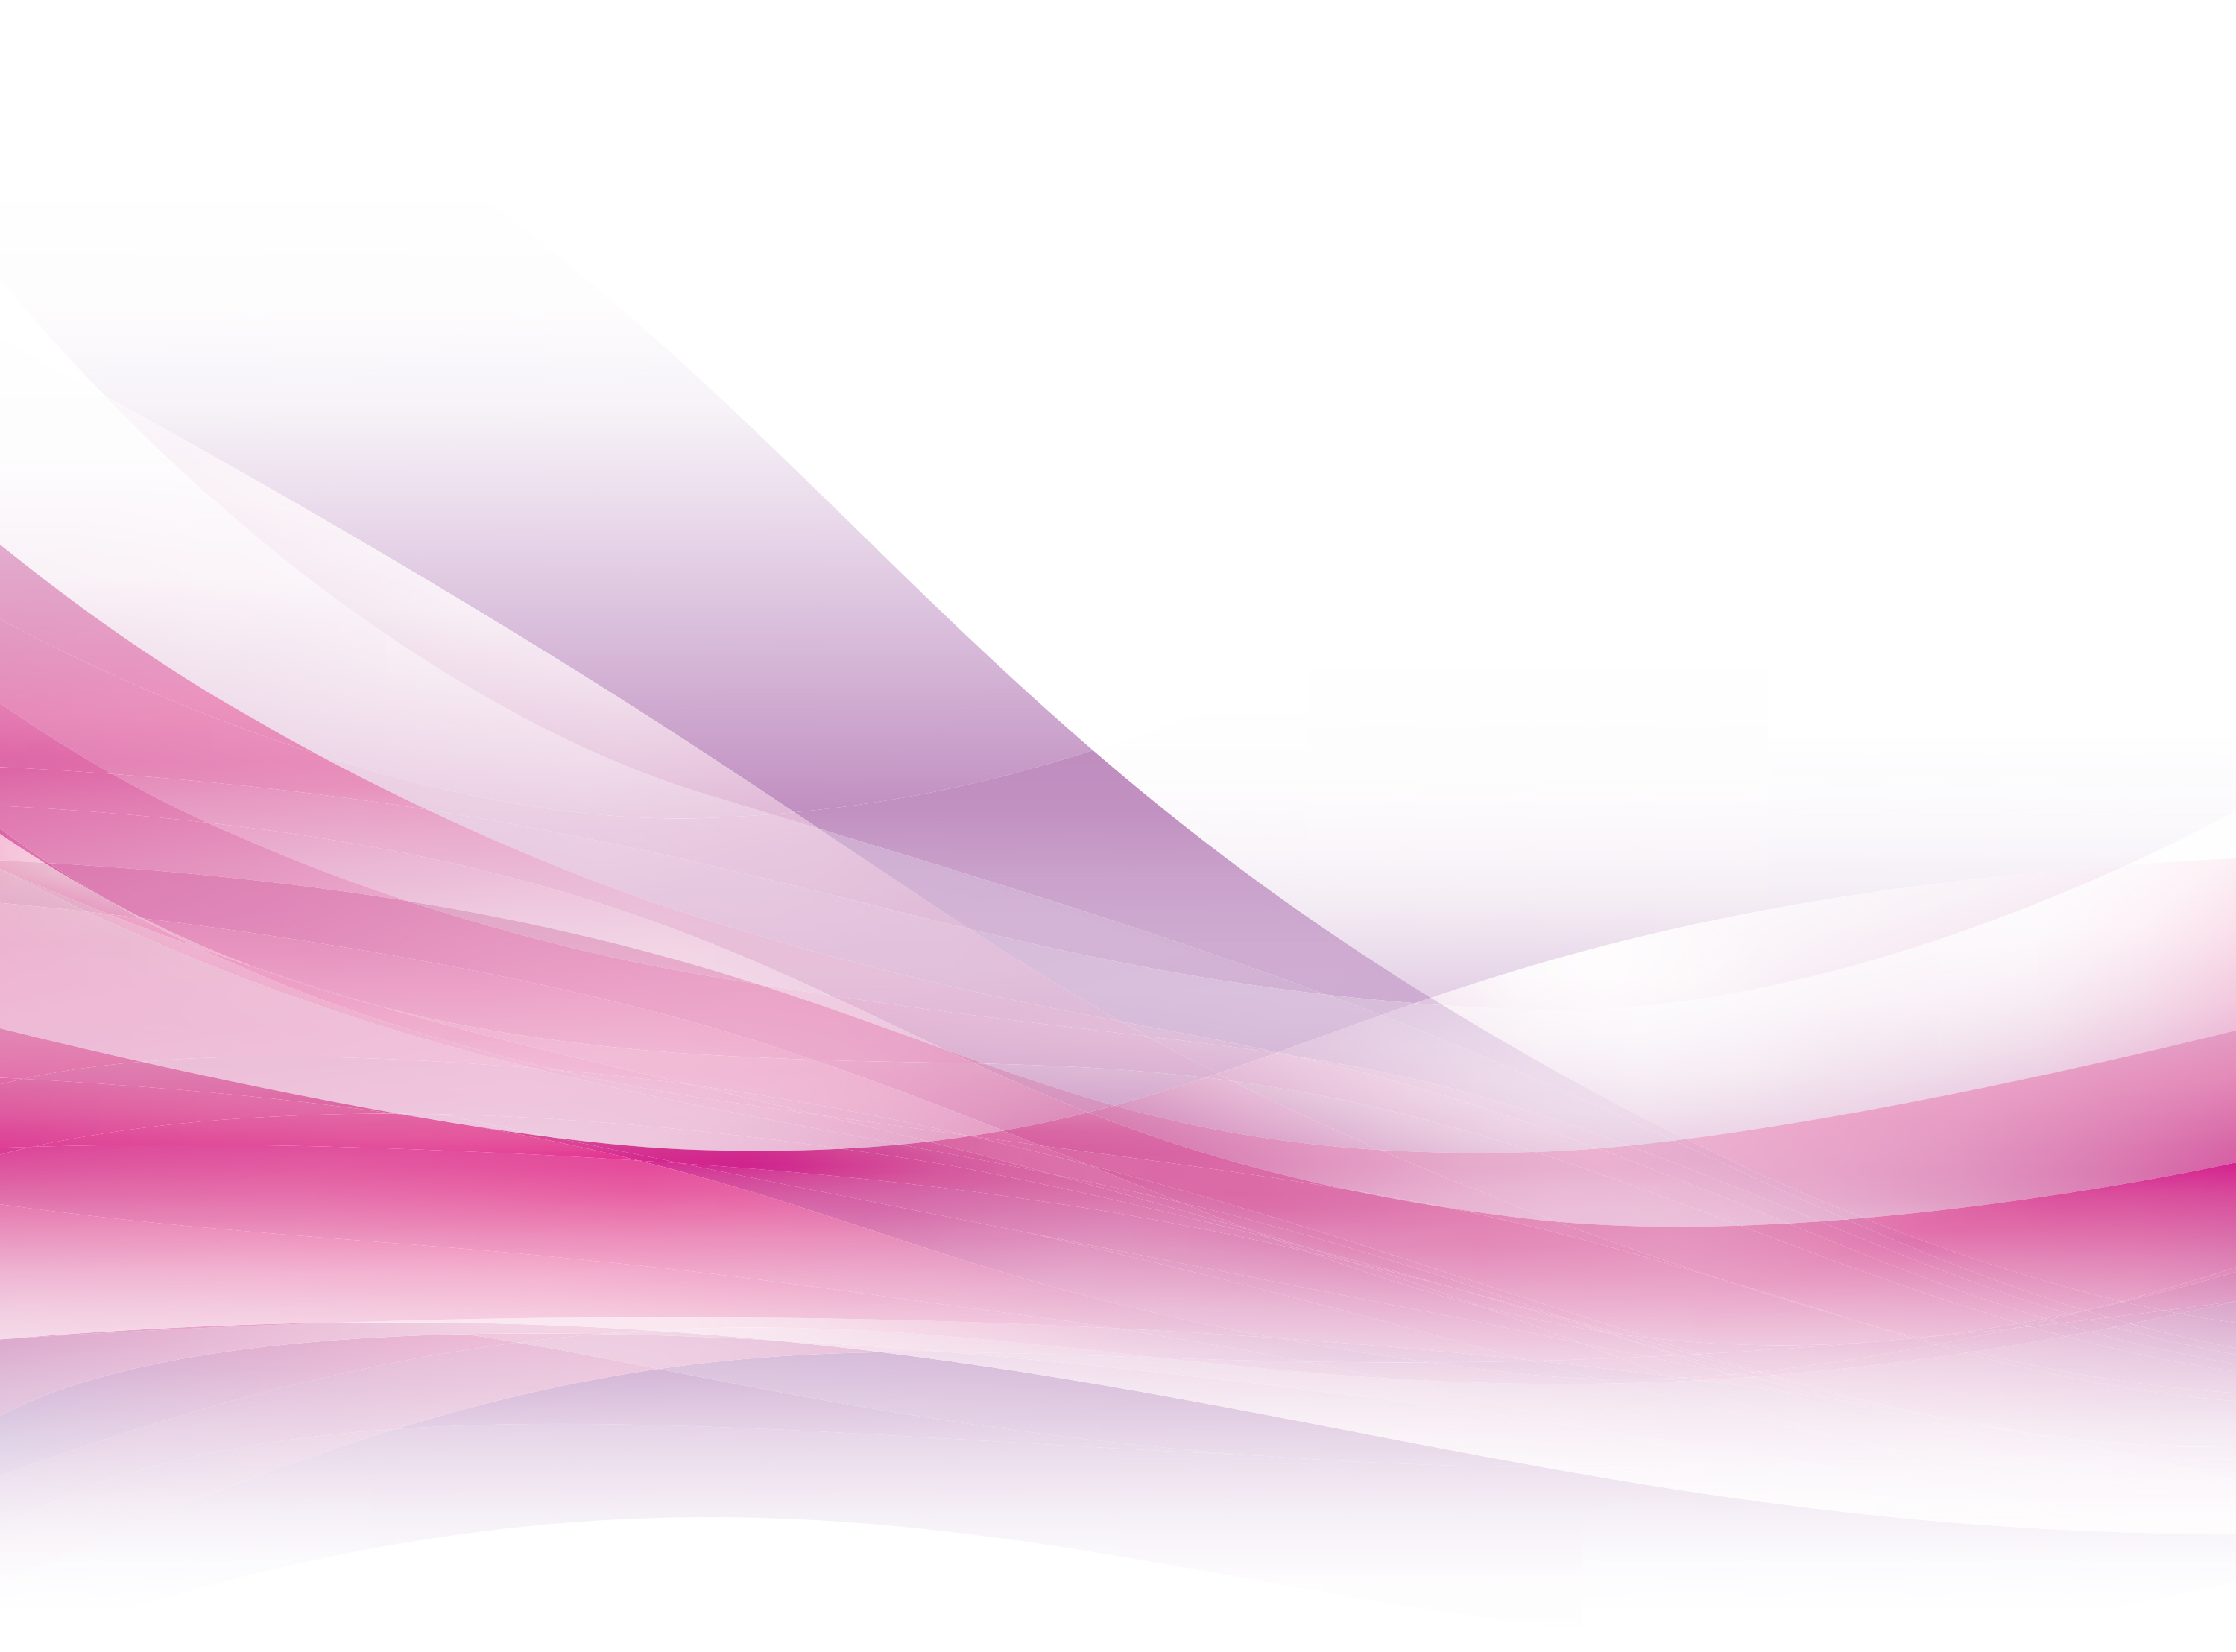 Wave Background PNG - 166103